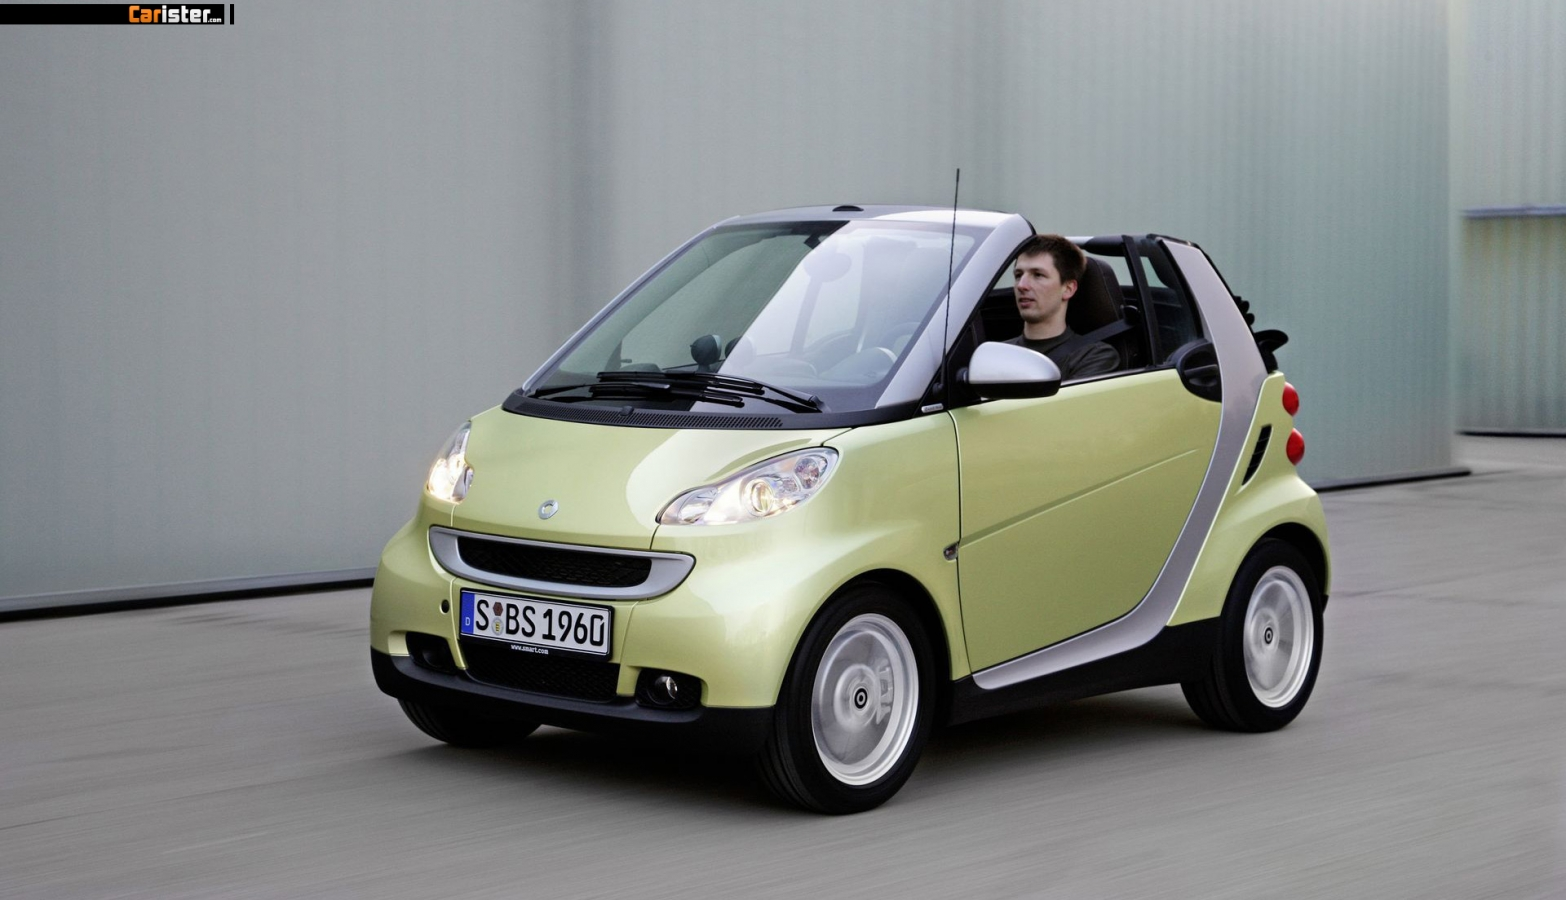 Smart Fortwo Limited Three 2009 - Photo 10 - Taille: 1566x900